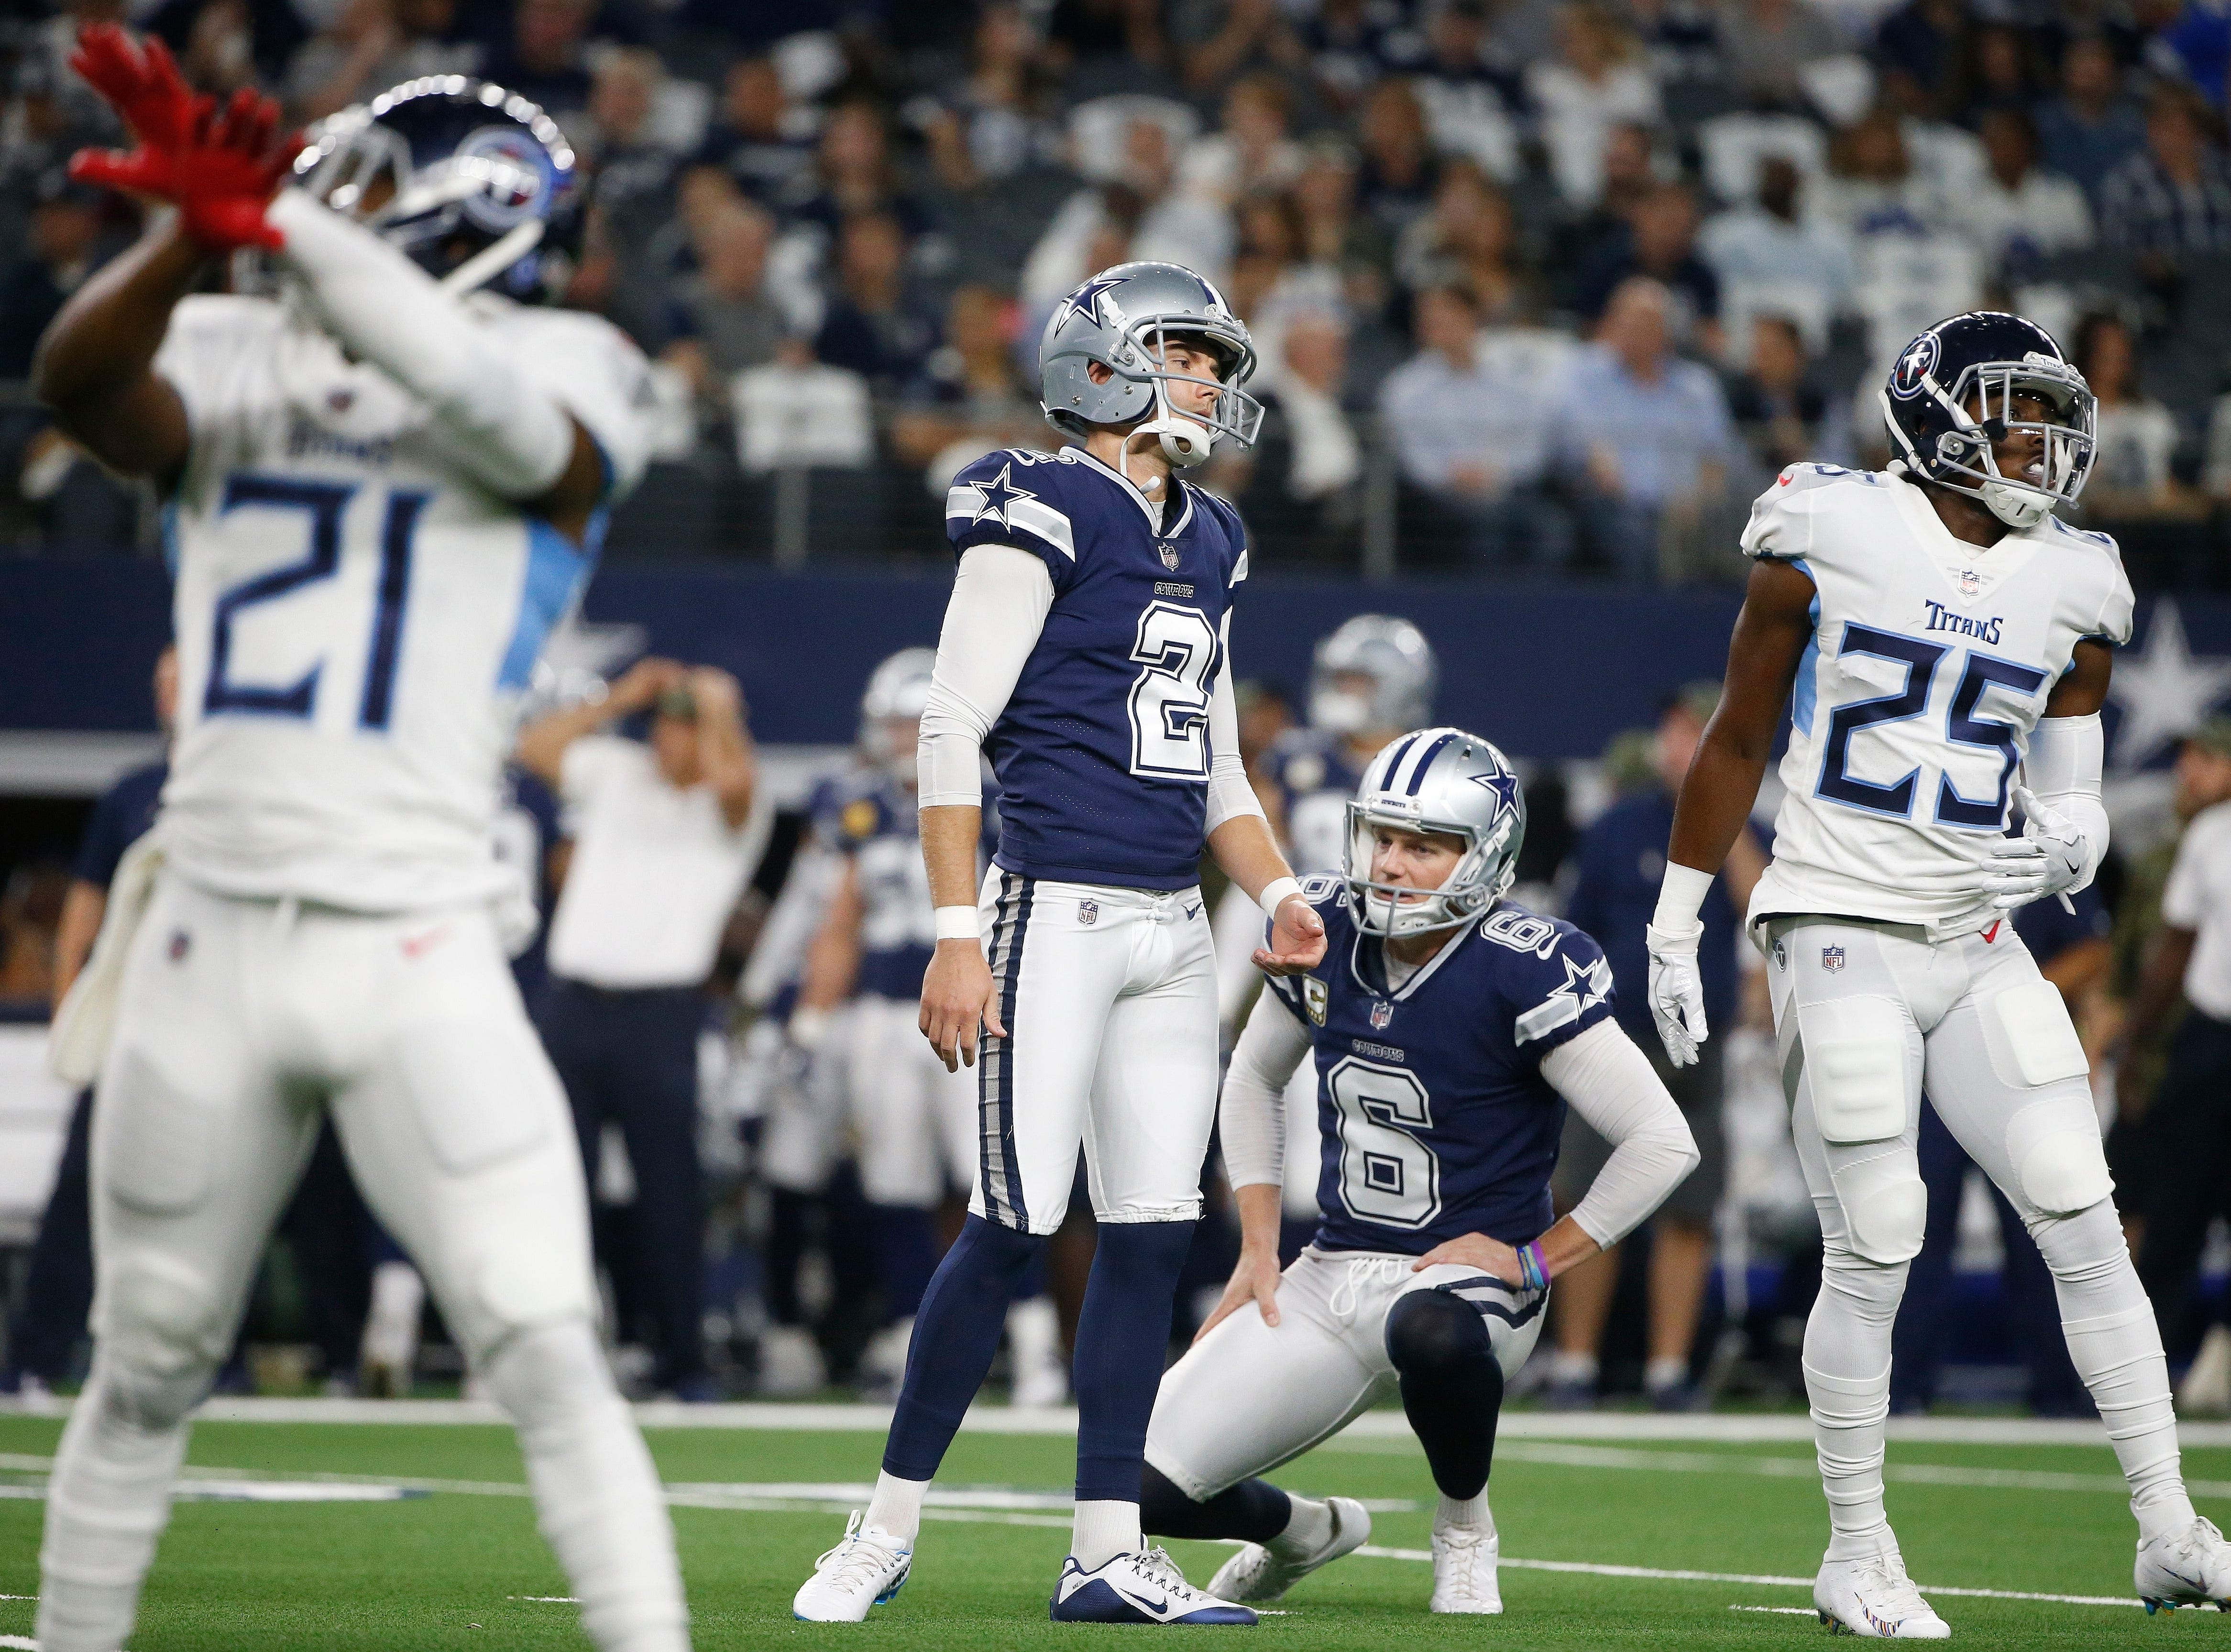 Dallas Cowboys kicker Brett Maher (2) attempts a field goal and reacts after missing the shot against the Tennessee Titans during the first half of an NFL football game, Monday, Nov. 5, 2018, in Arlington, Texas.